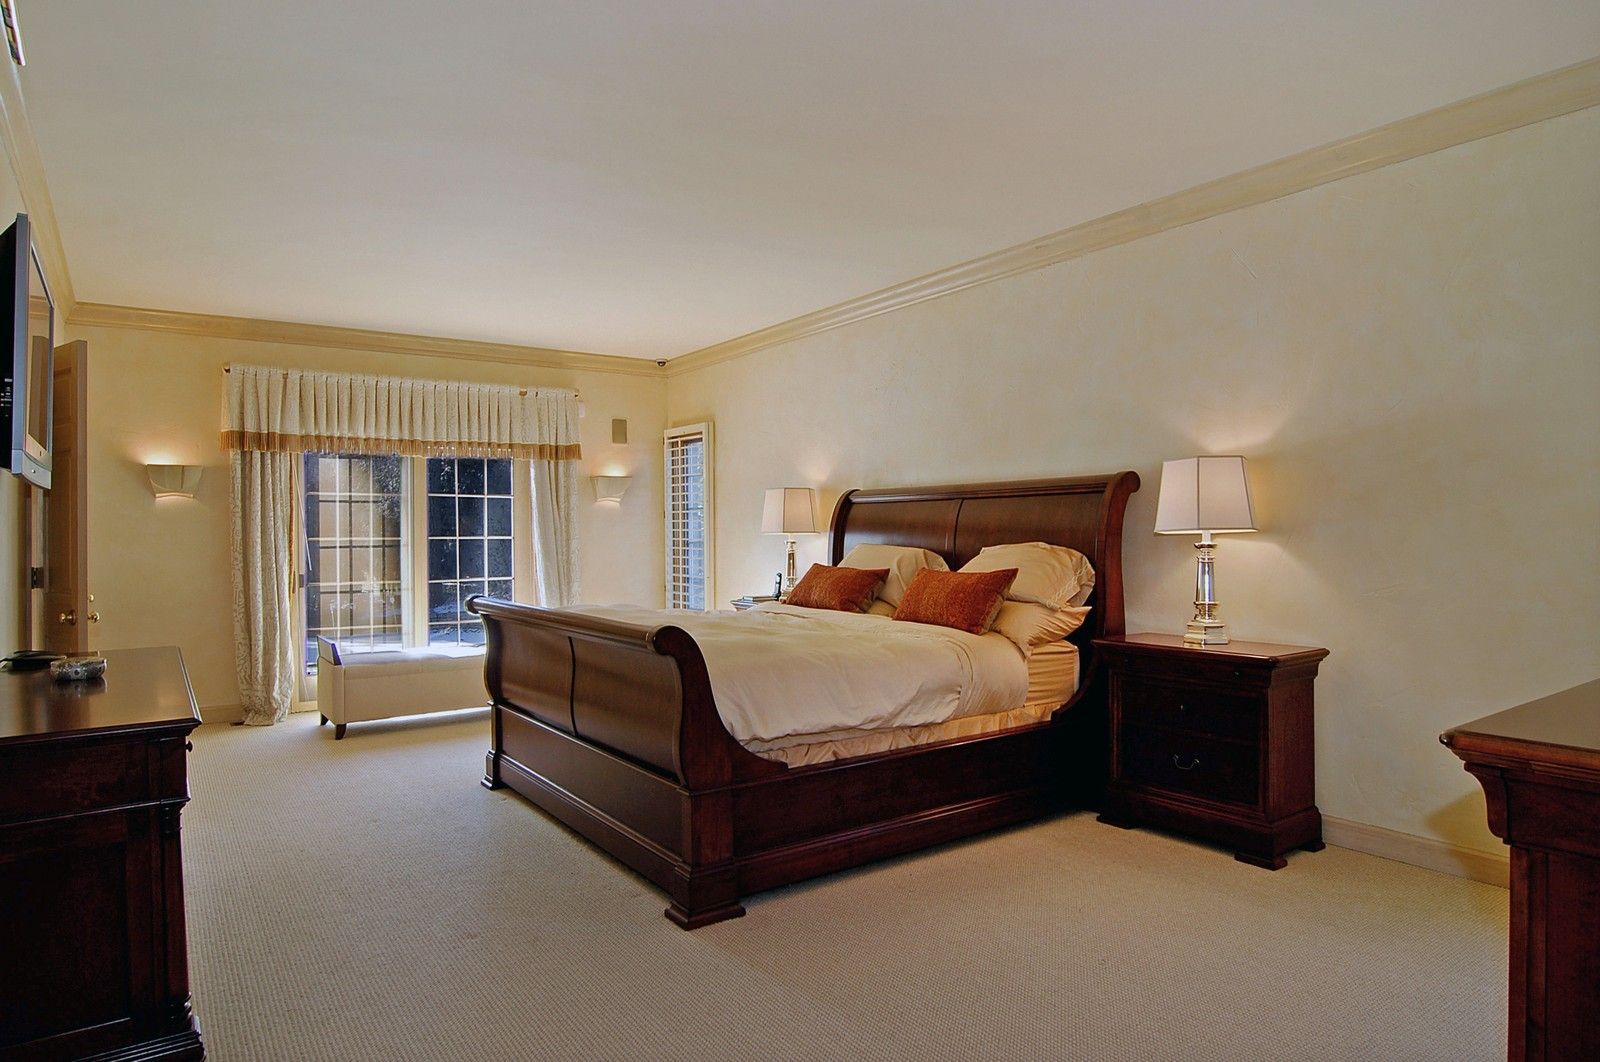 Real Estate Photography - 656 E 6th St, Hinsdale, IL, 60521 - Master Bedroom